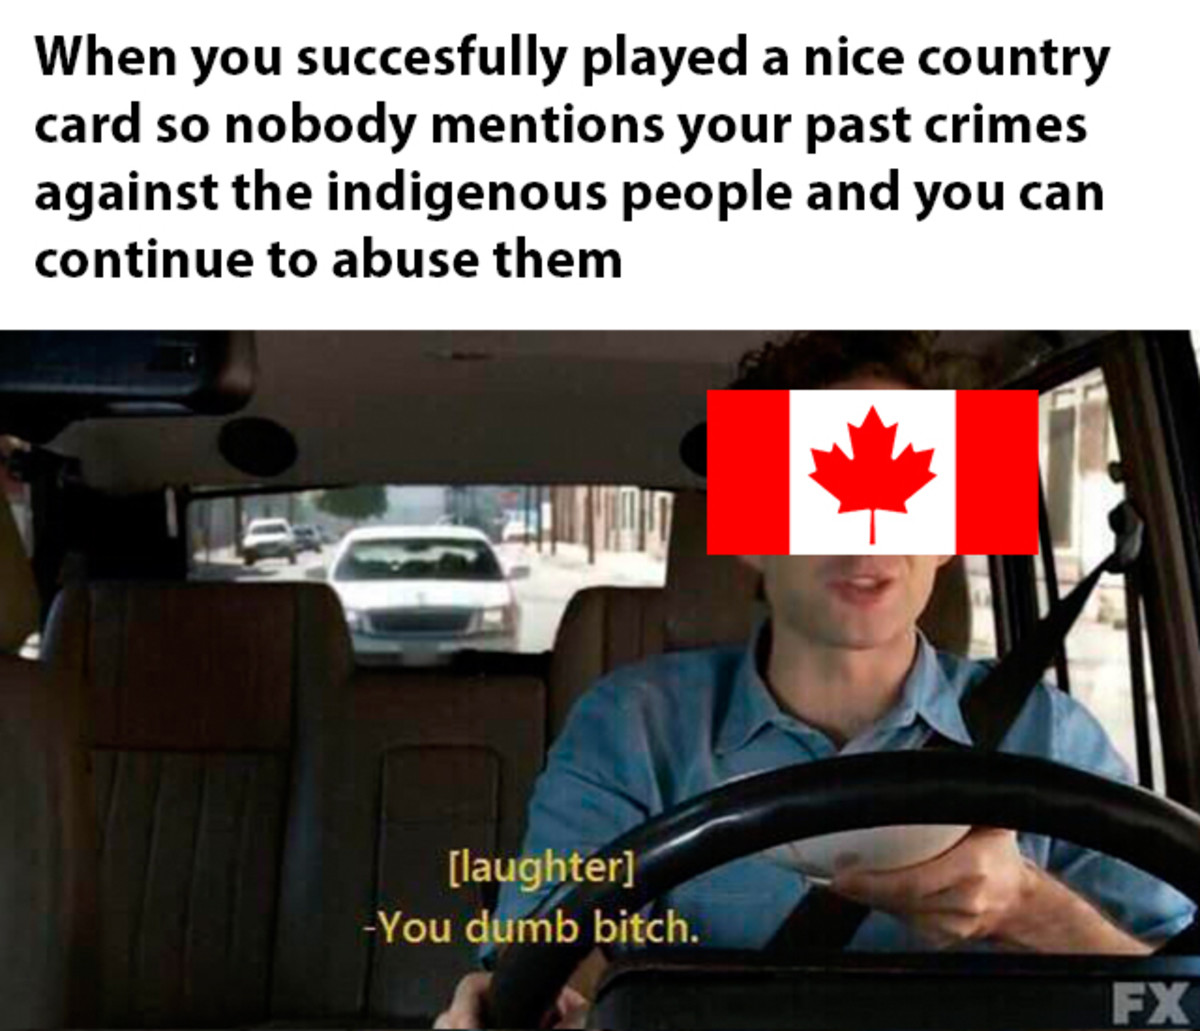 Proud of ya, Canada. .. We do like to cover things up and then point fingers at other countries like the US. Not far from where I live as recently as the 1950's a native man was lynche